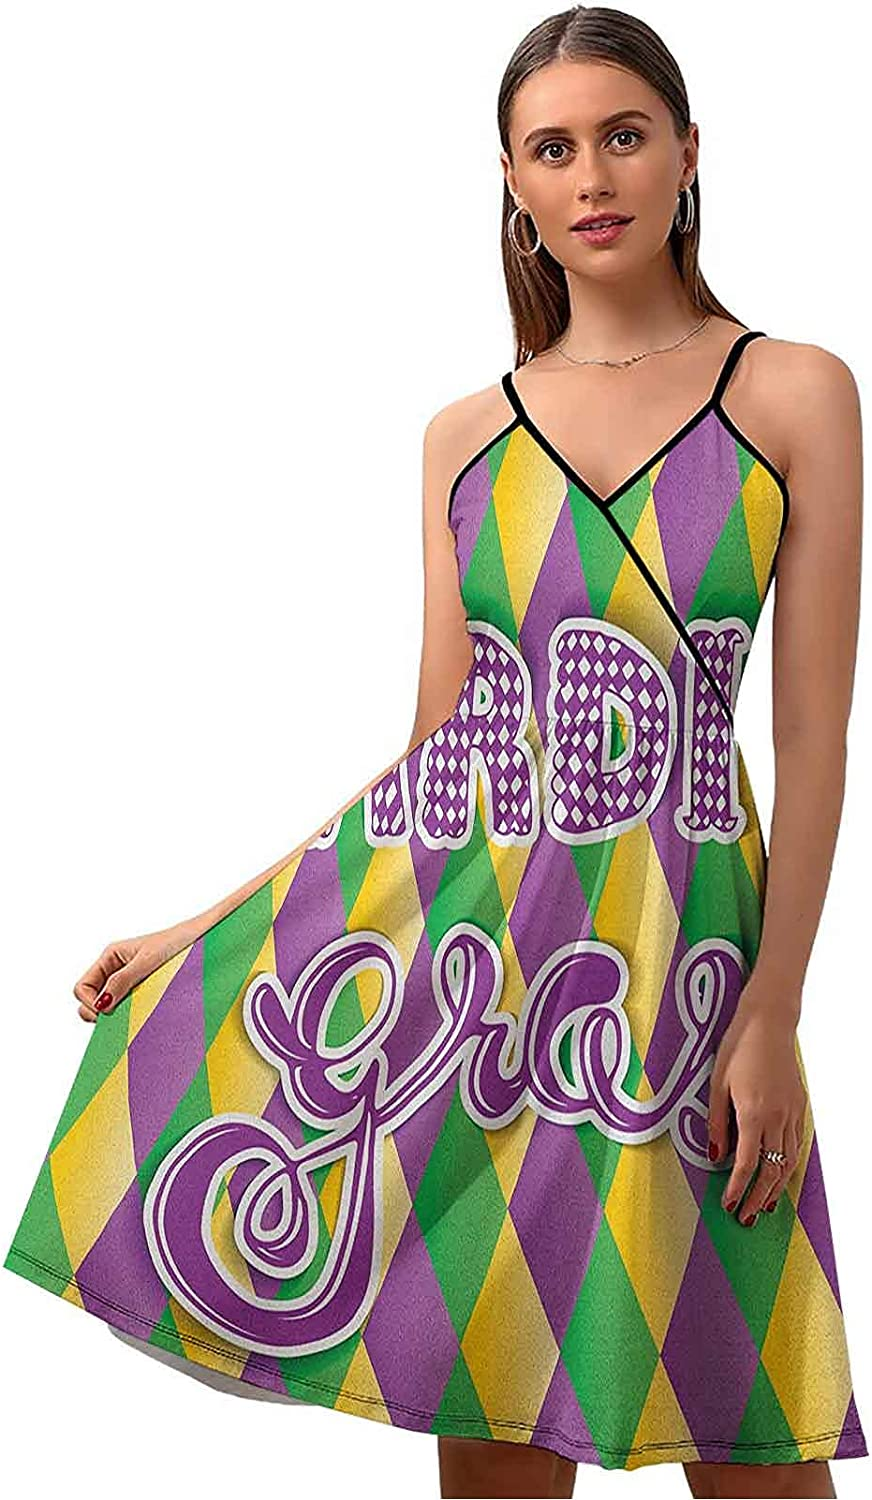 Mardi Boston Mall Directly managed store Gras Summer Dresses Casual Lettering Stylized